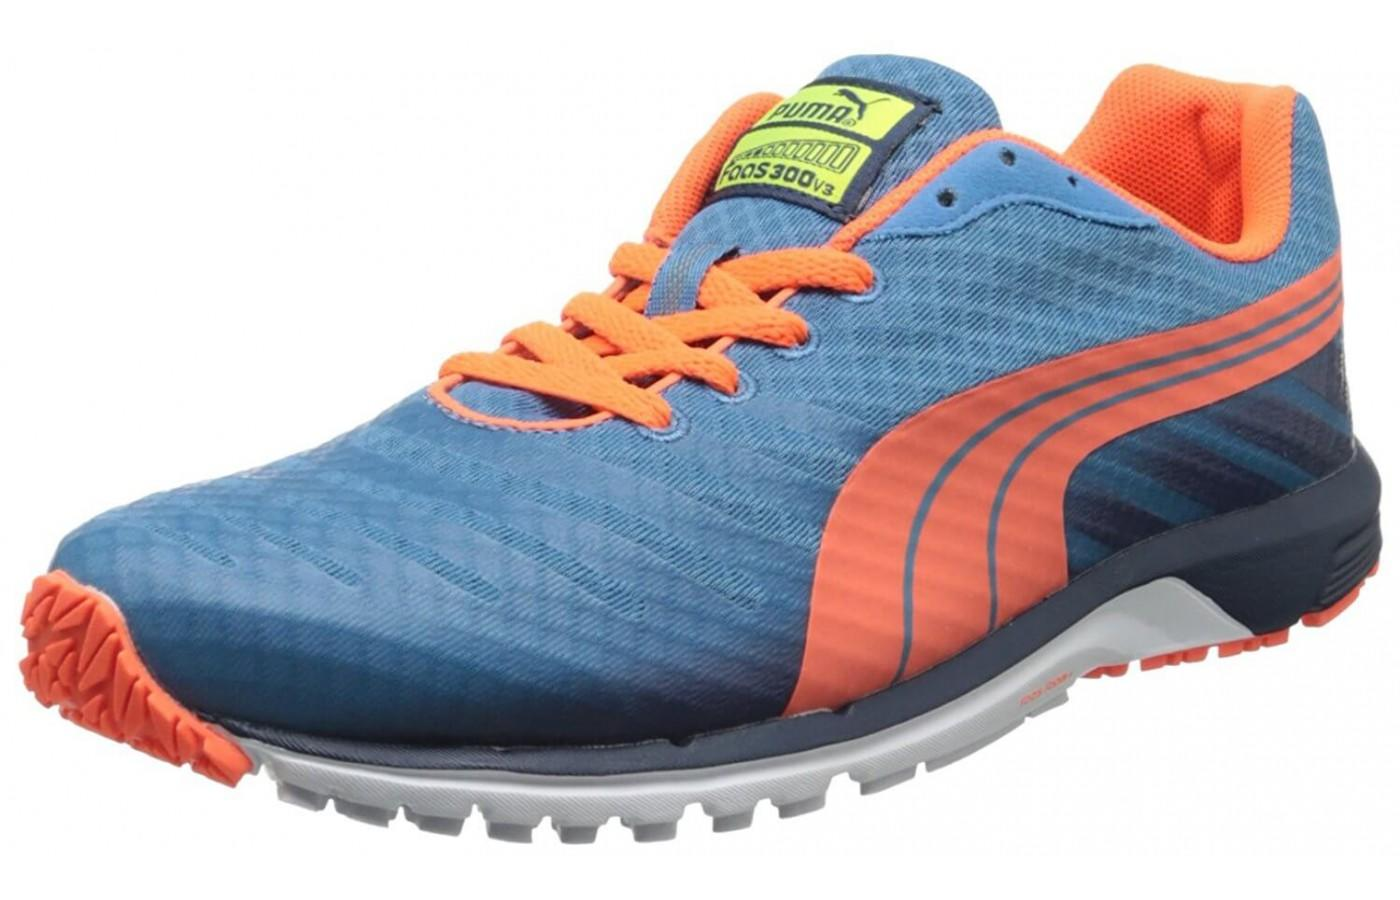 Check out the Vibrant colors featured on the Puma Fans 300 v3